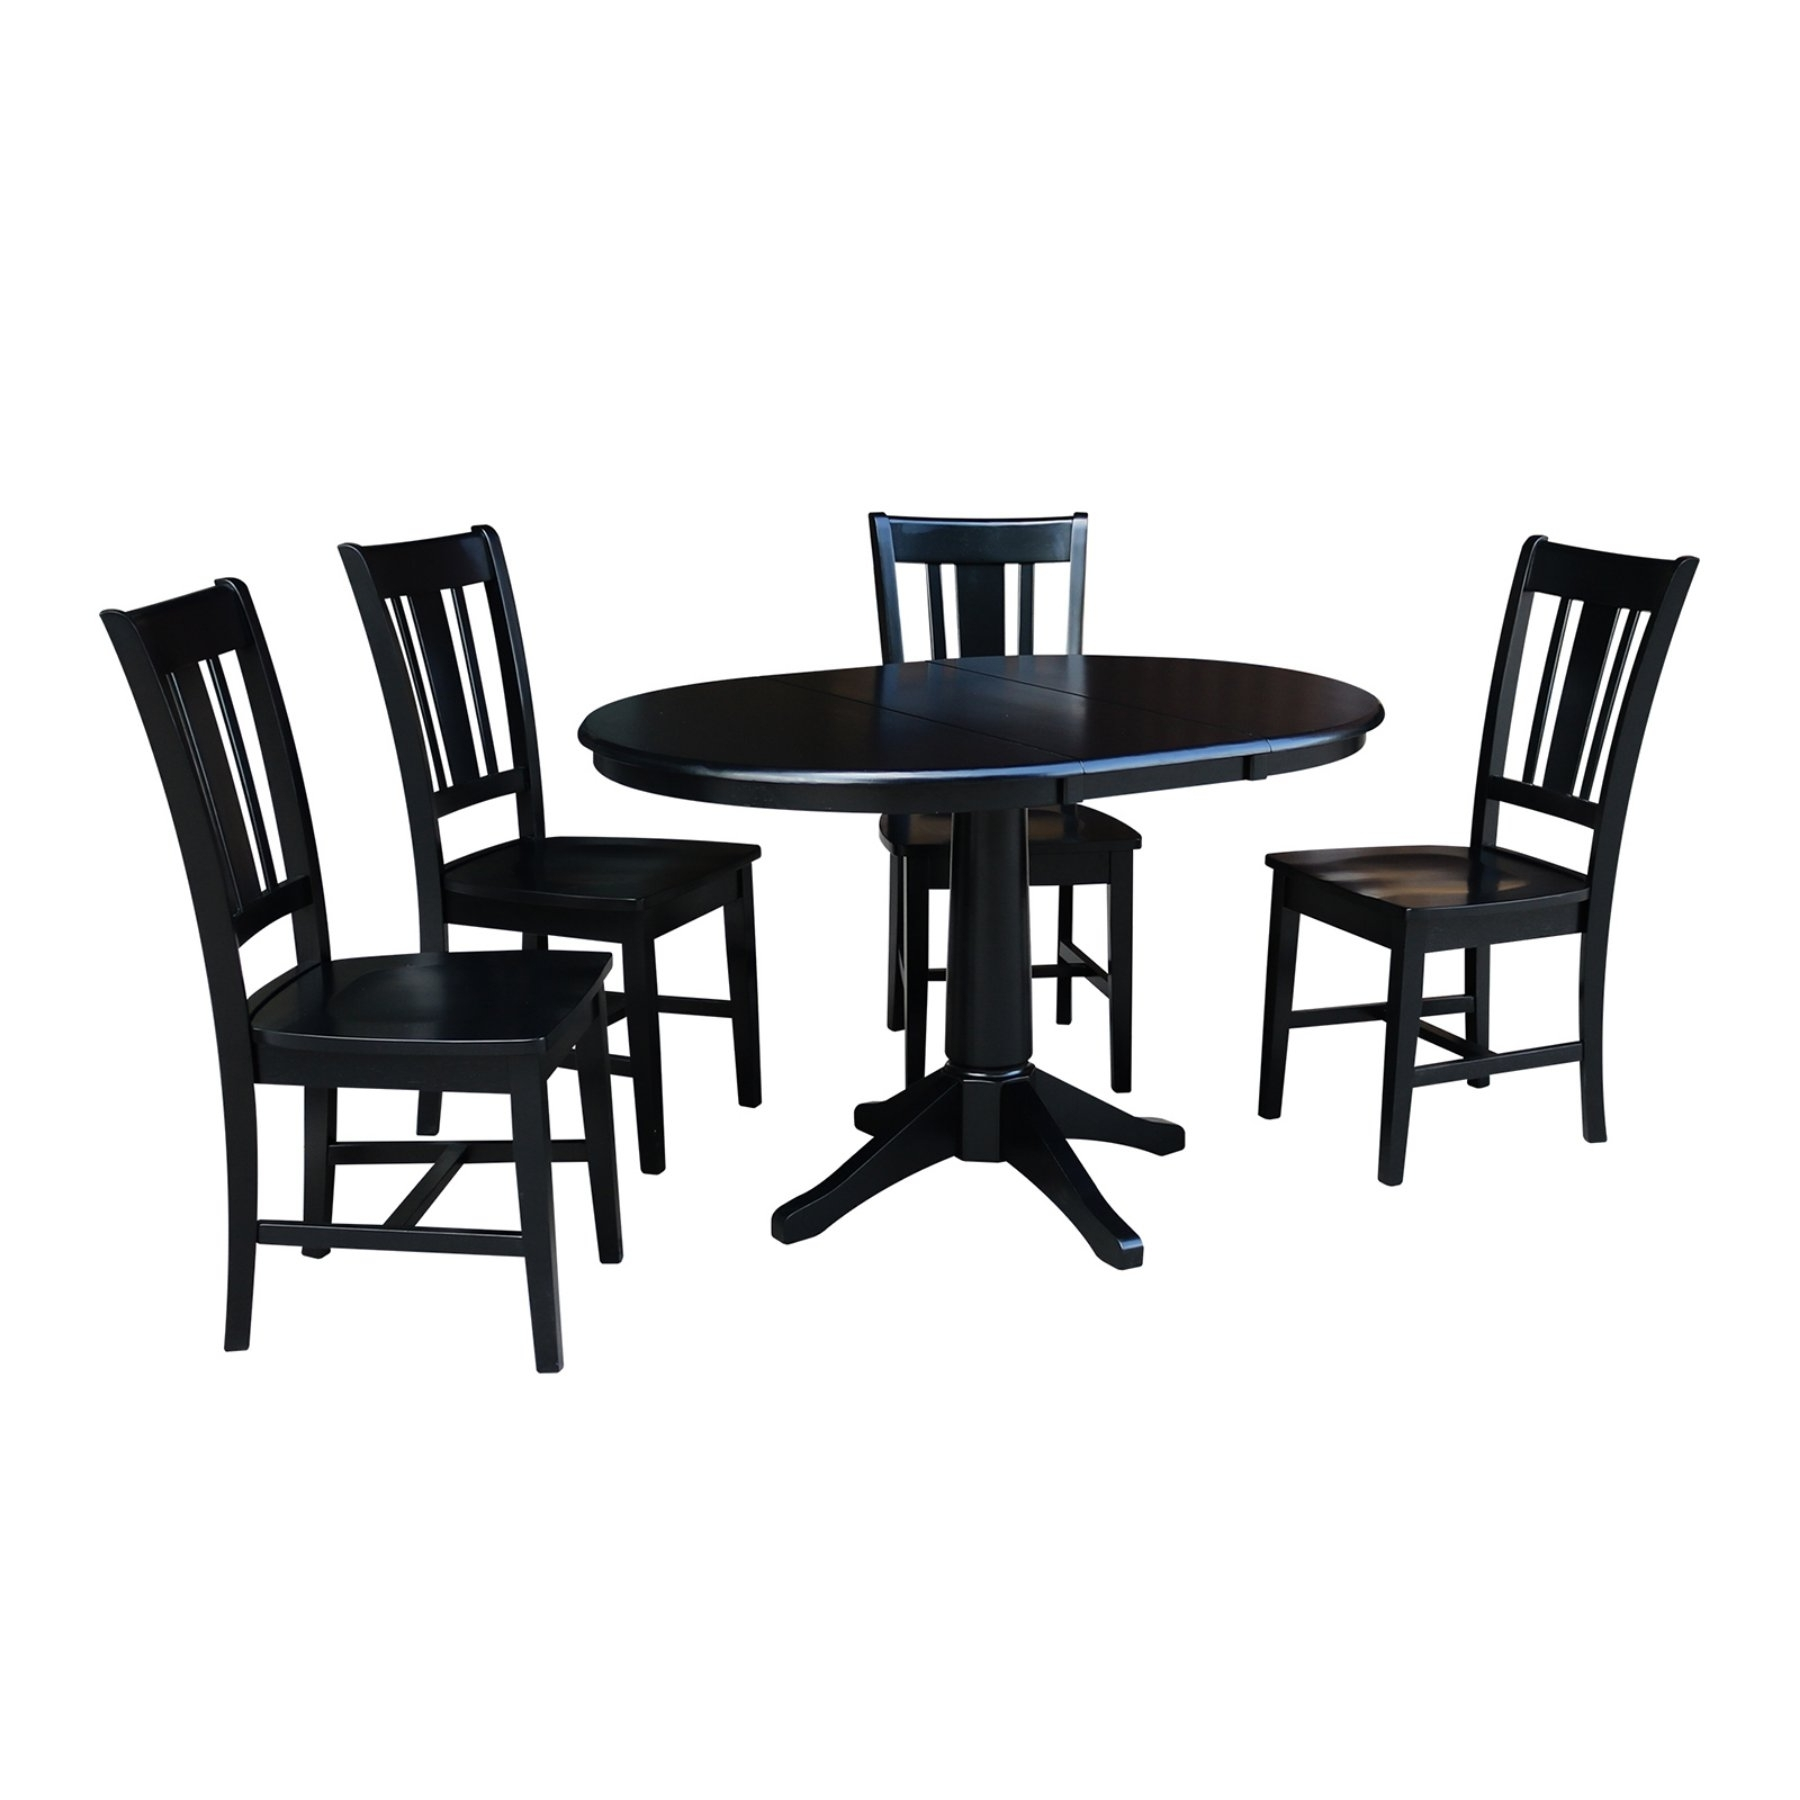 Fashionable Kirsten 5 Piece Dining Sets With International Concepts 5 Piece Dining Table Set With Extension Leaf (View 5 of 25)